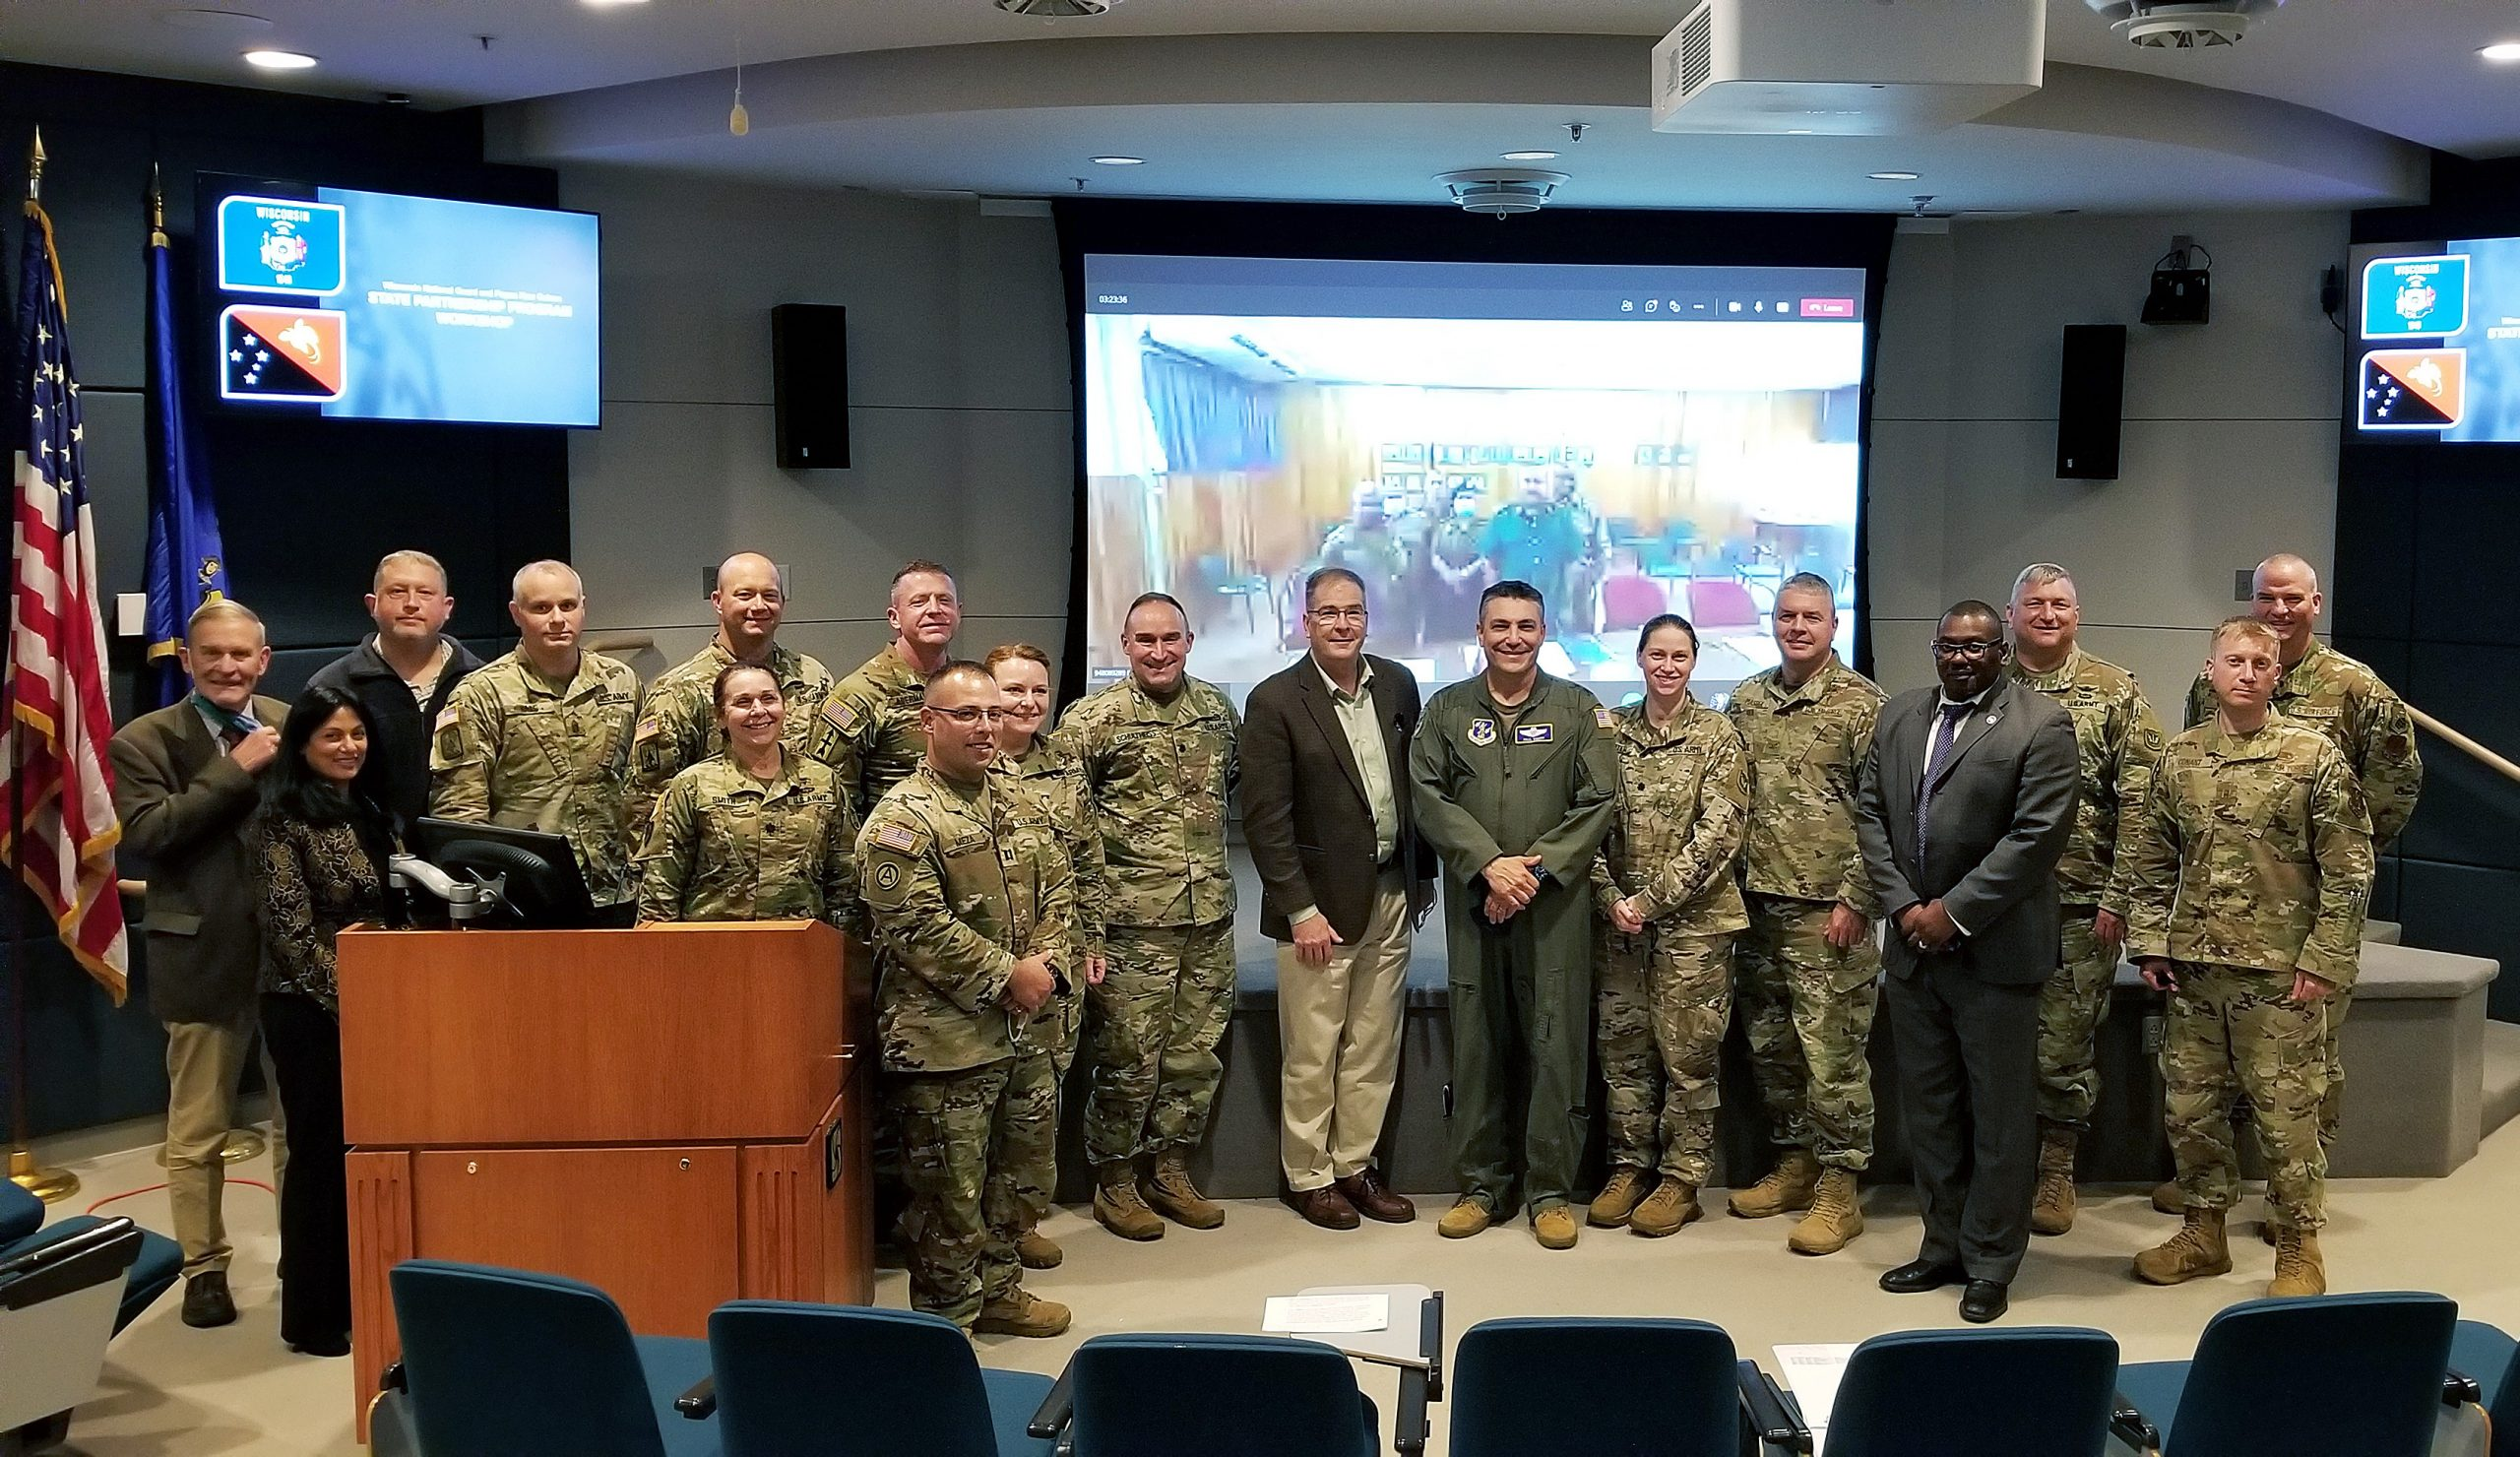 A May 27 group photo of participants in the three-day State Partnership Program workshop between Wisconsin, in the foreground, and Papua New Guinea, on screen. The State Partnership Program links individual states with armed forces of partner nations around the world to forge lasting cooperation, friendship, and mutually beneficial relationships. The 32nd Division, which included most of the Wisconsin National Guard at the time, fought the Japanese in Papua New Guinea during World War II. Wisconsin Department of Military Affairs photo by Katie Reinfeld